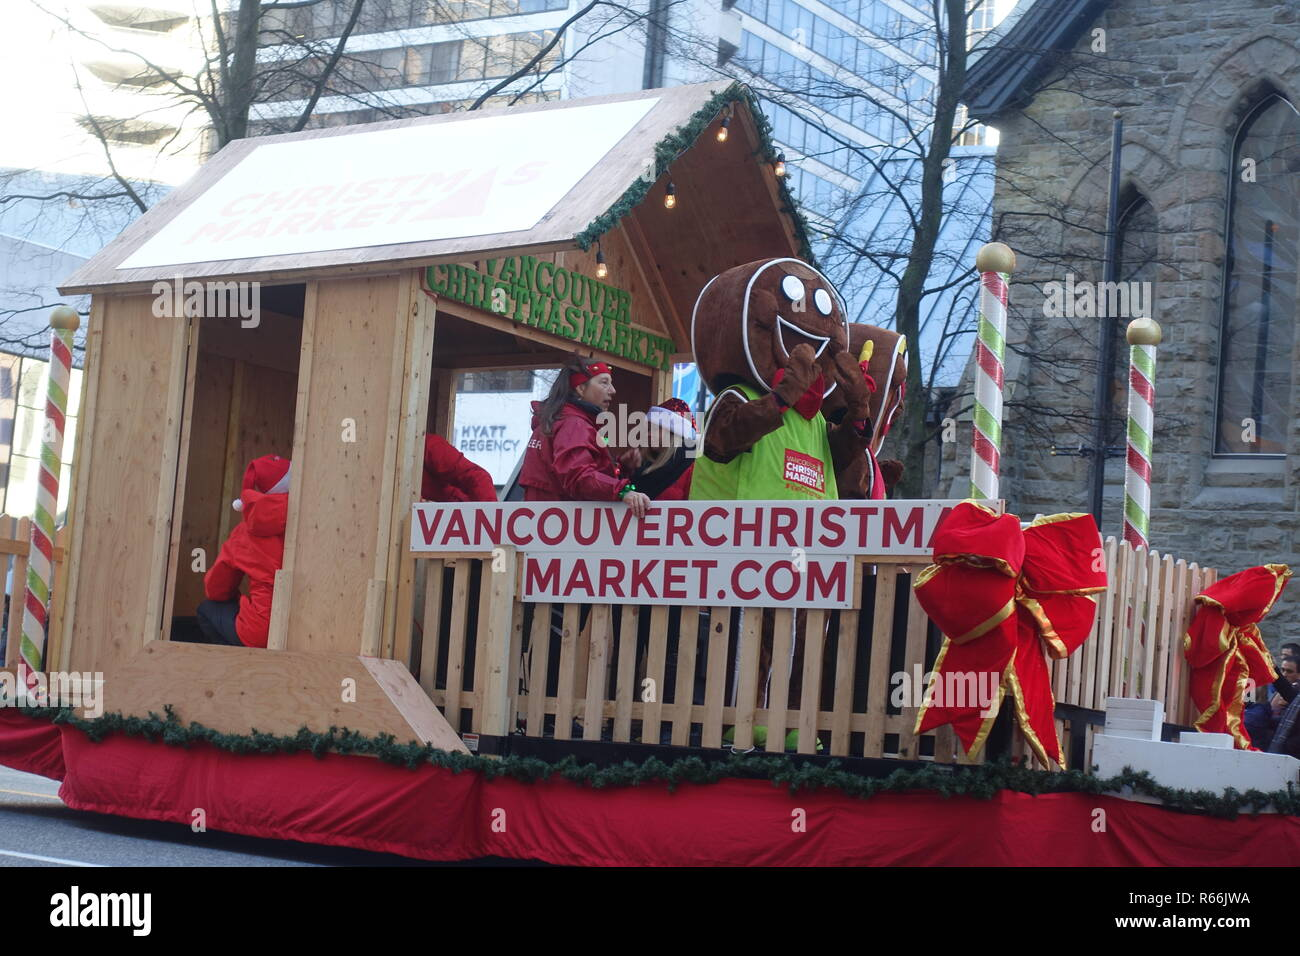 Vancouver Christmas Market 2018.December 2 2018 Vancouver Christmas Market Joined The Santa